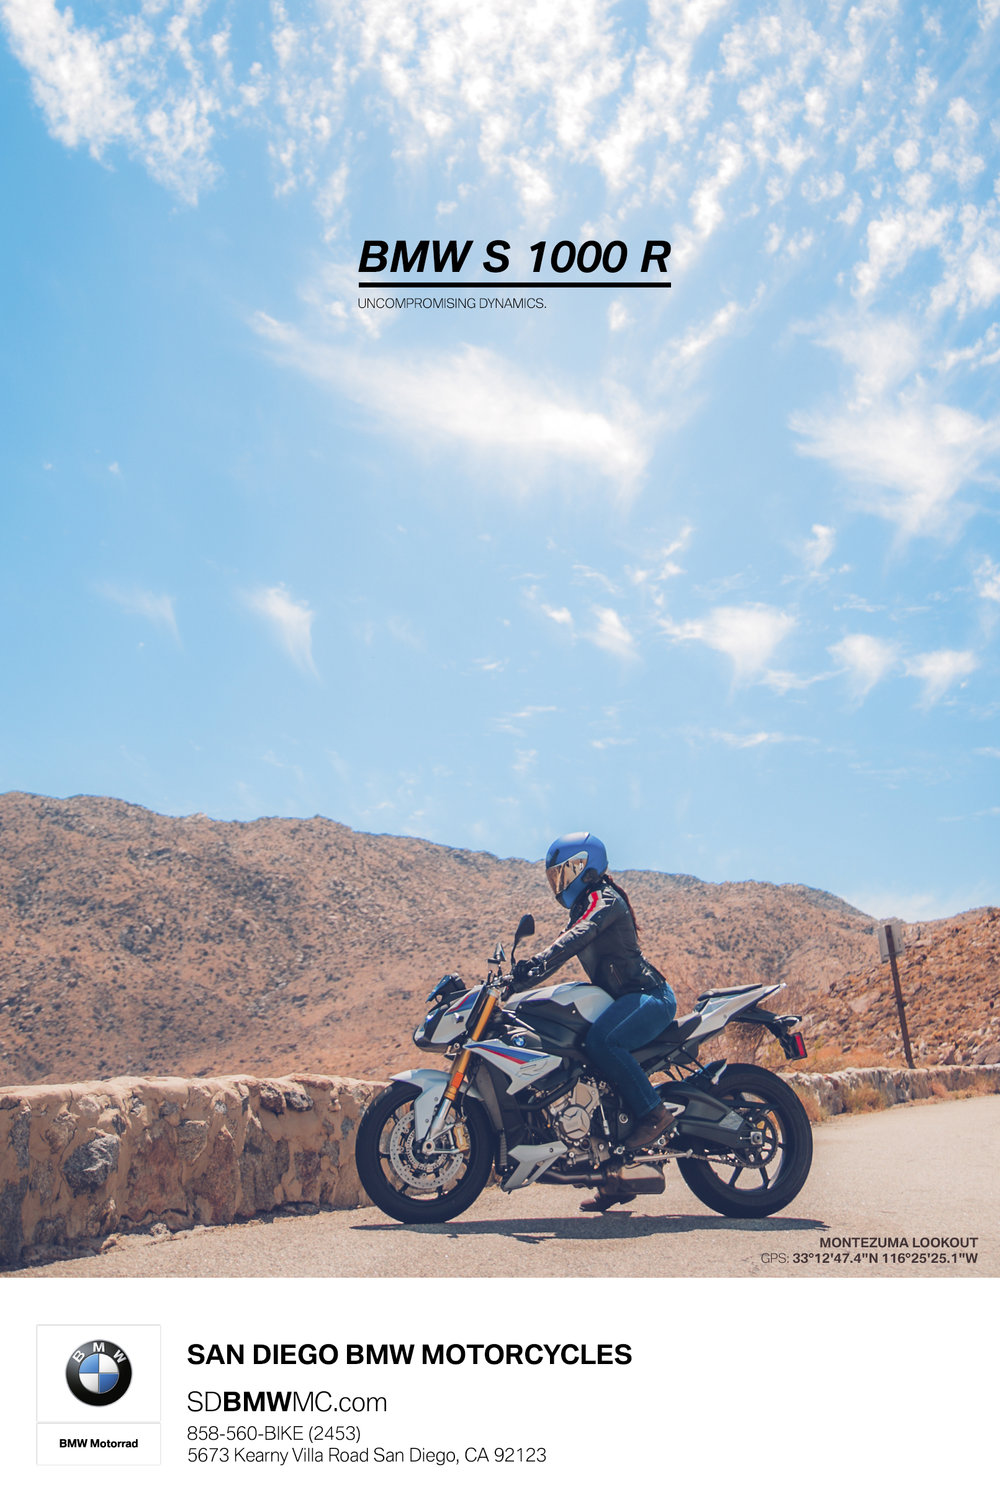 BMW Motorcycle S1000 R